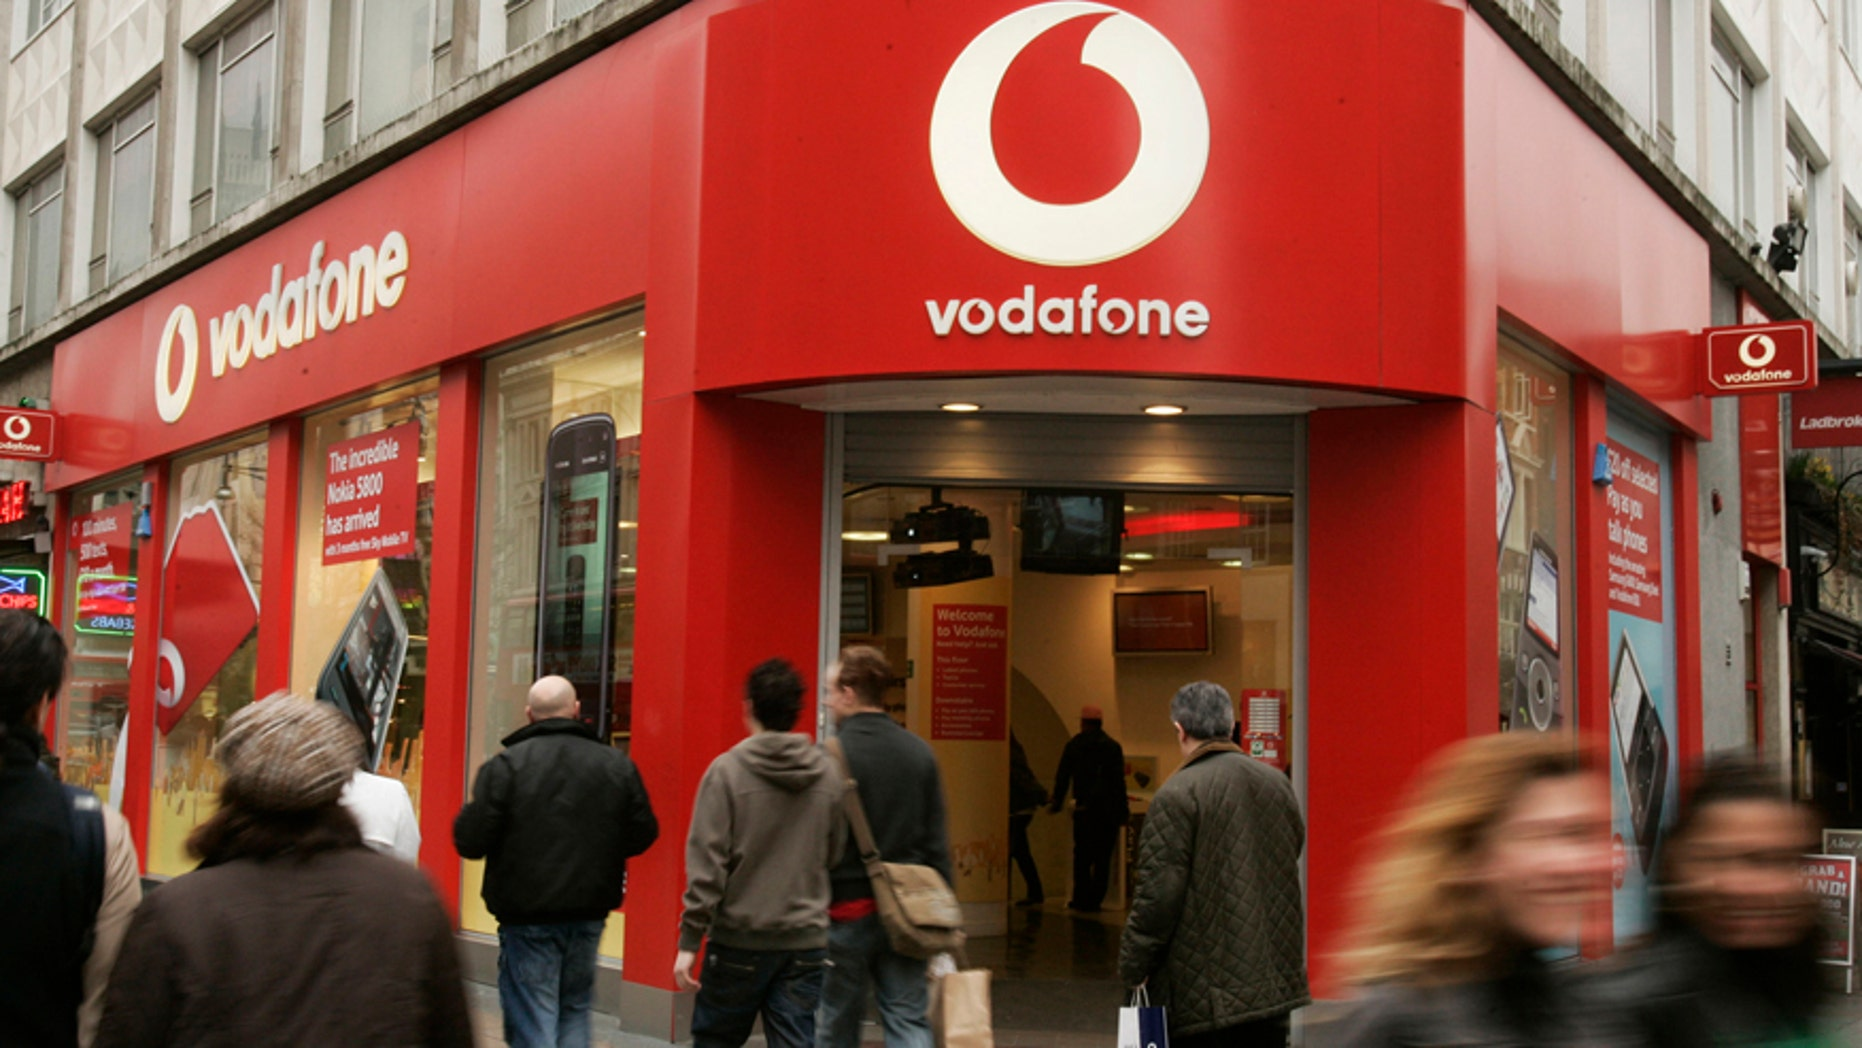 This Tuesday, Feb. 24, 2009 file photo shows people walking by a branch of Vodafone in central London.